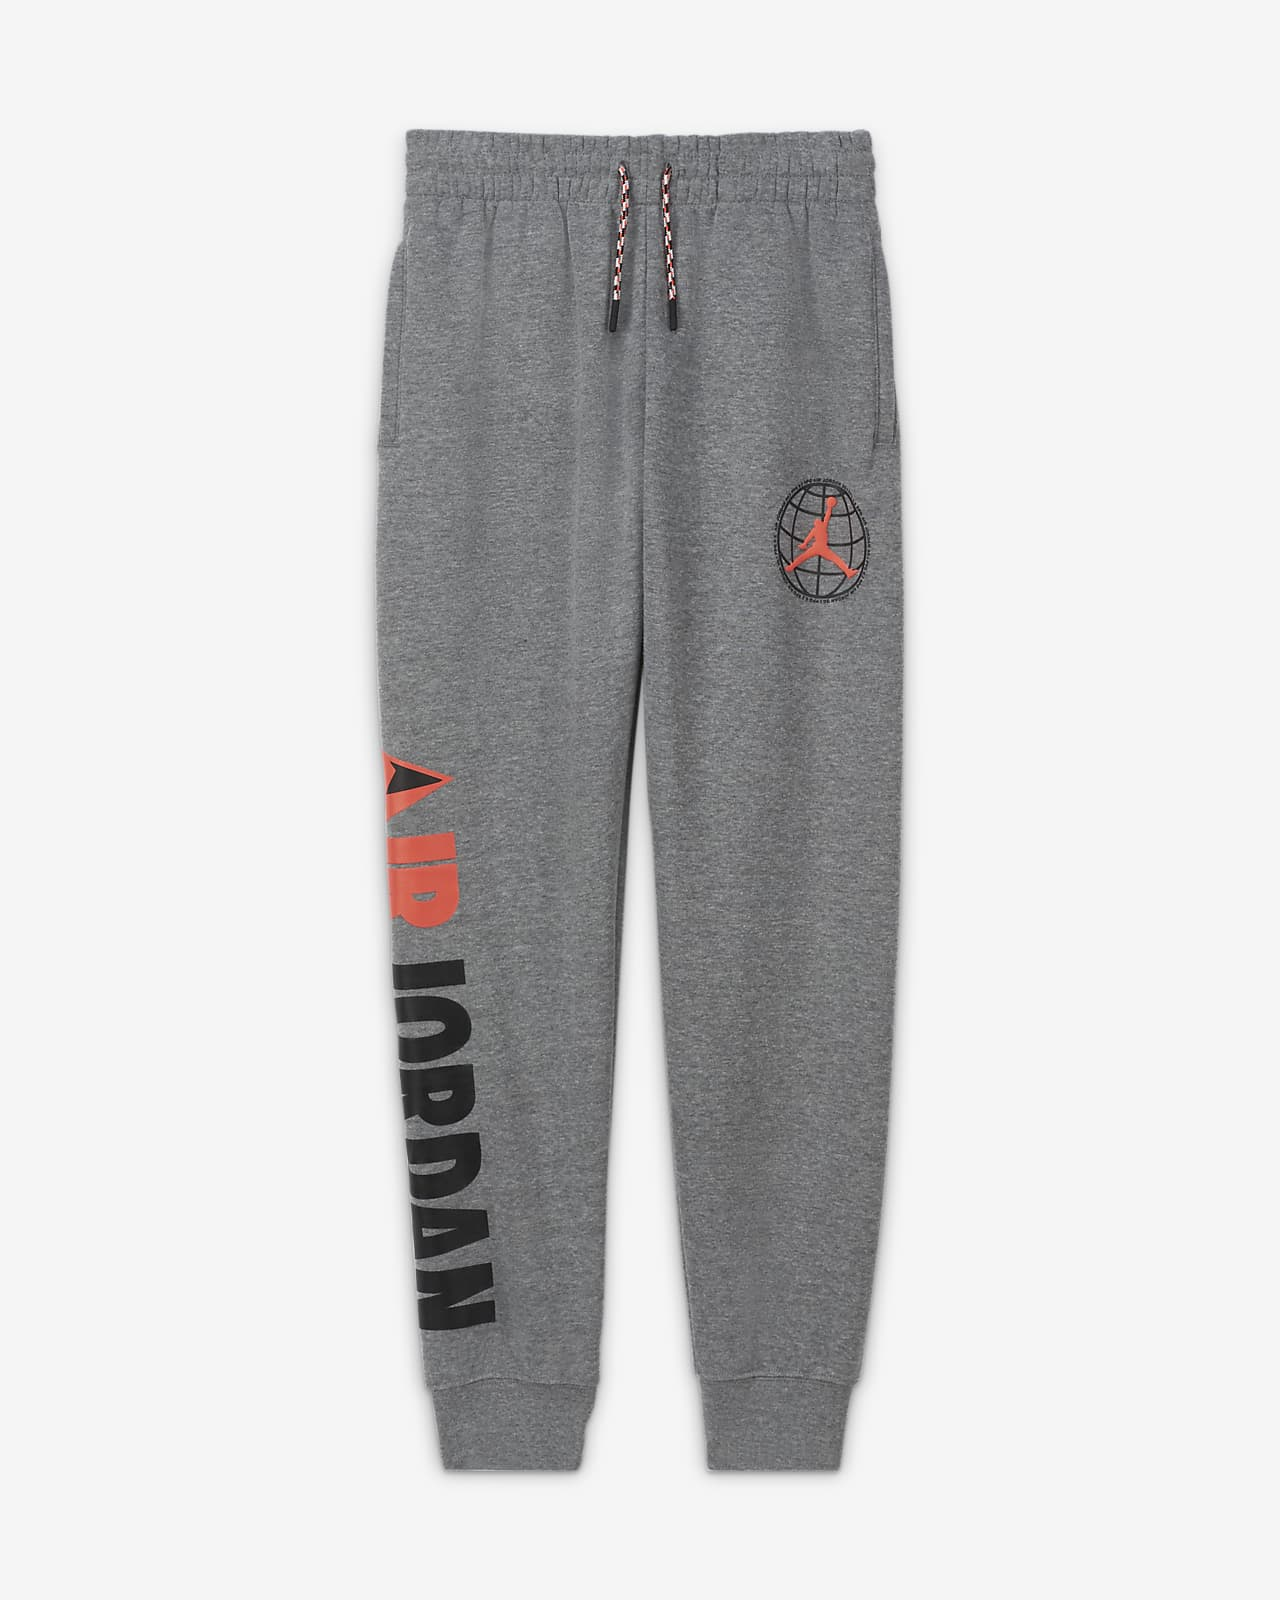 Jordan Older Kids' (Boys') Fleece Trousers